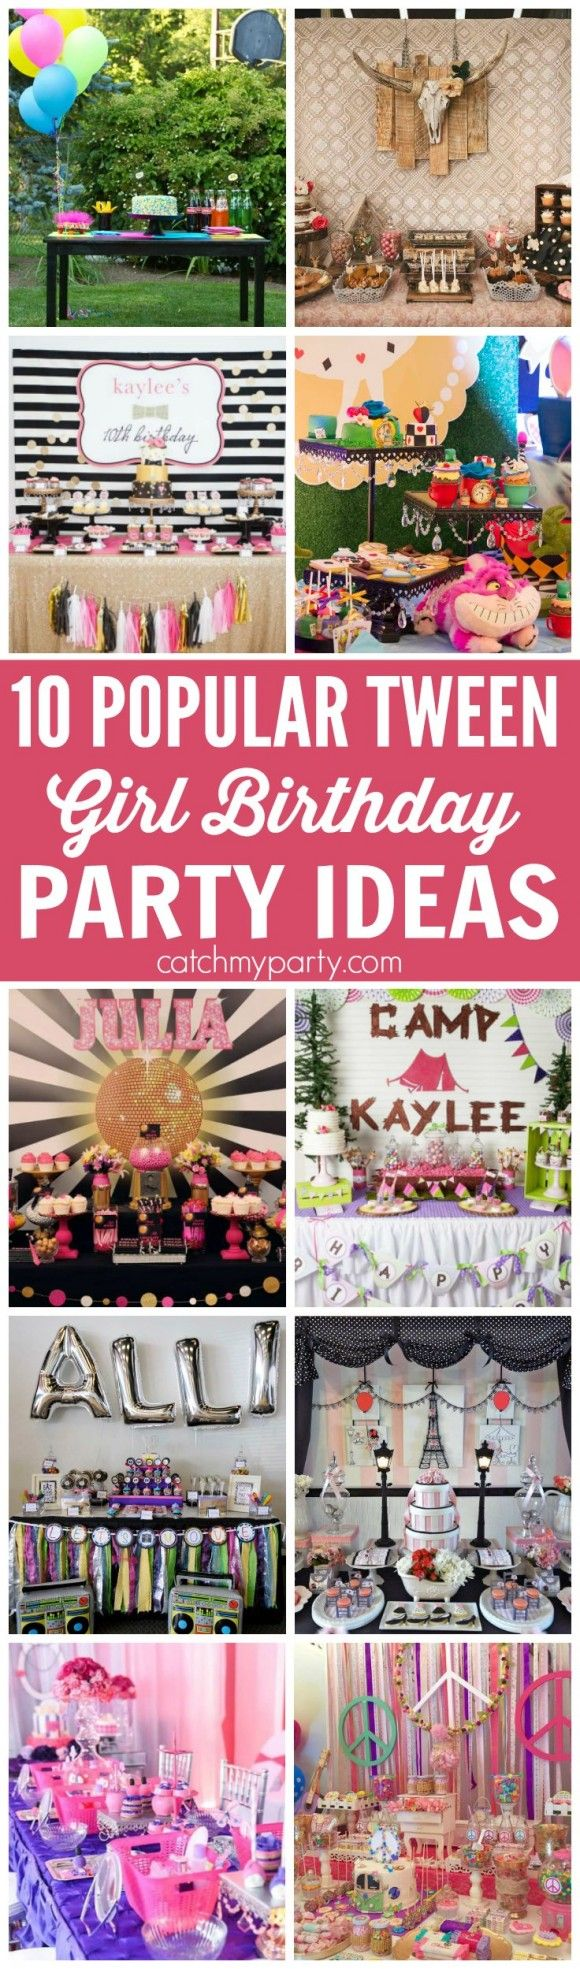 best 25 10th birthday parties ideas on pinterest 9th birthday